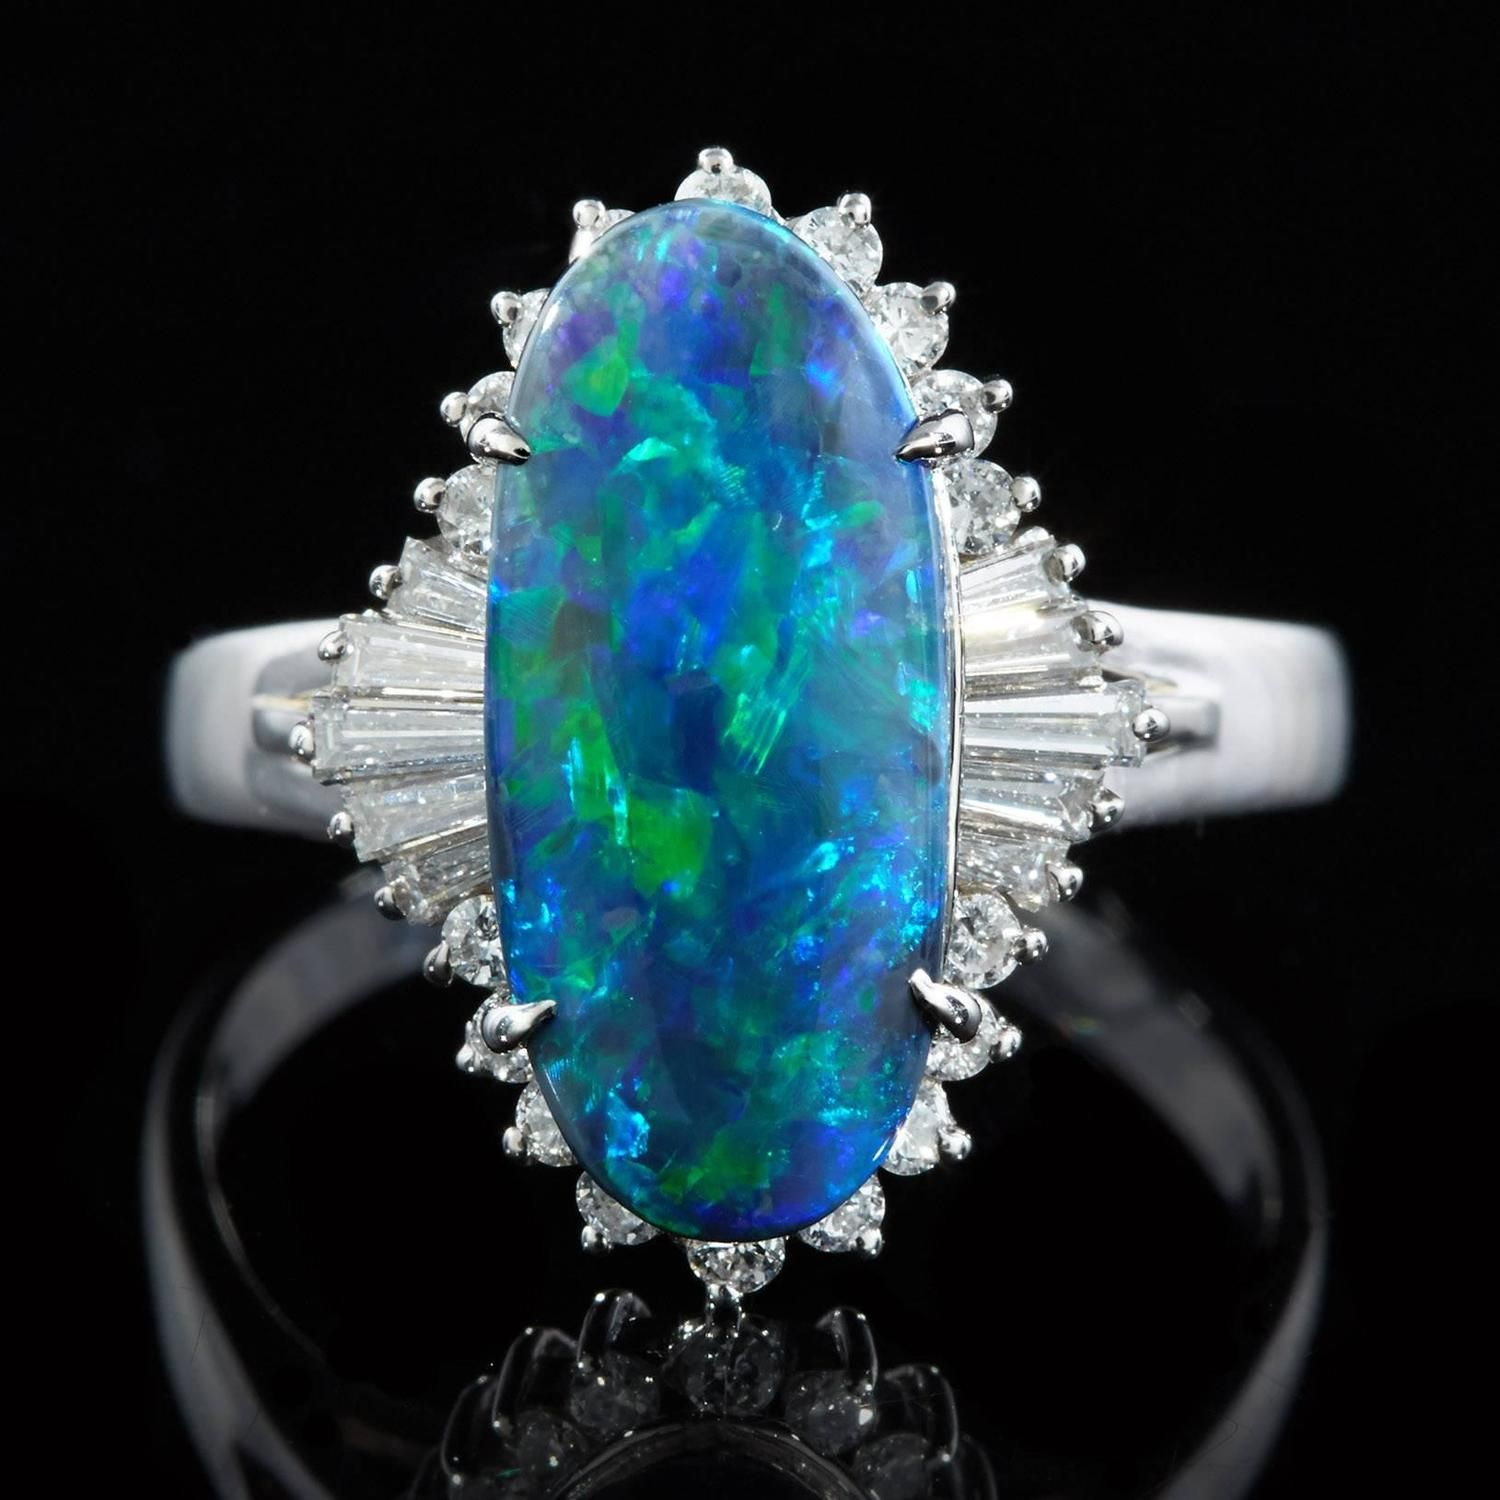 Platinum Ring features a Cabochon Cut Black Opal displaying Blue and Green Play of Color. This opal measures 15.71 x 7.0 mm. A total of 28 round brilliant cut and tapered baguette cut diamonds surrounds the opal with a total of 0.47 carats.